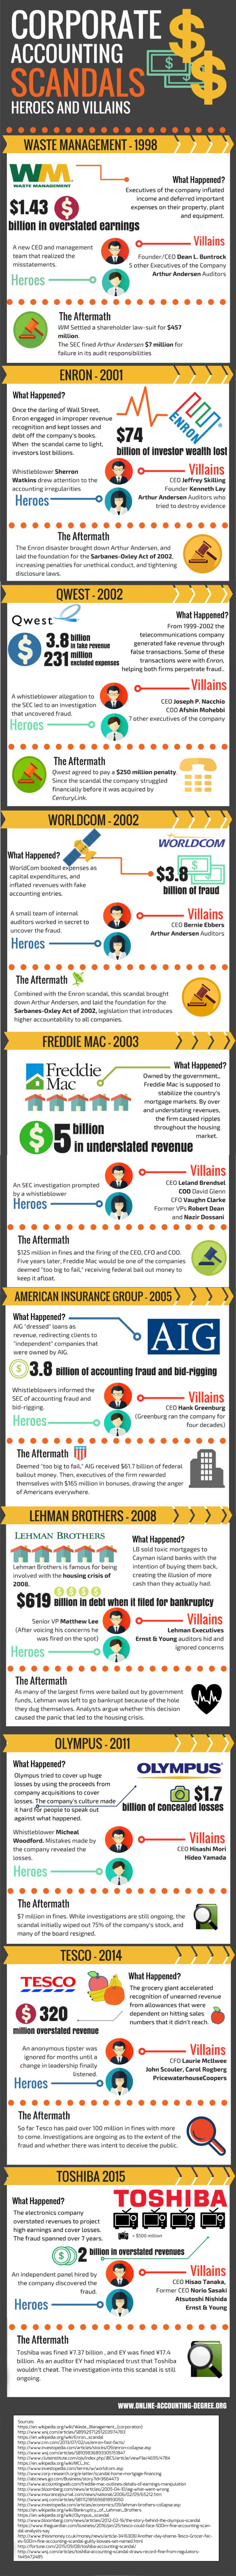 This infographic from the folks at Online-Accounting-Degree.org outlines some of the most heinous corporate accounting scandals of all…